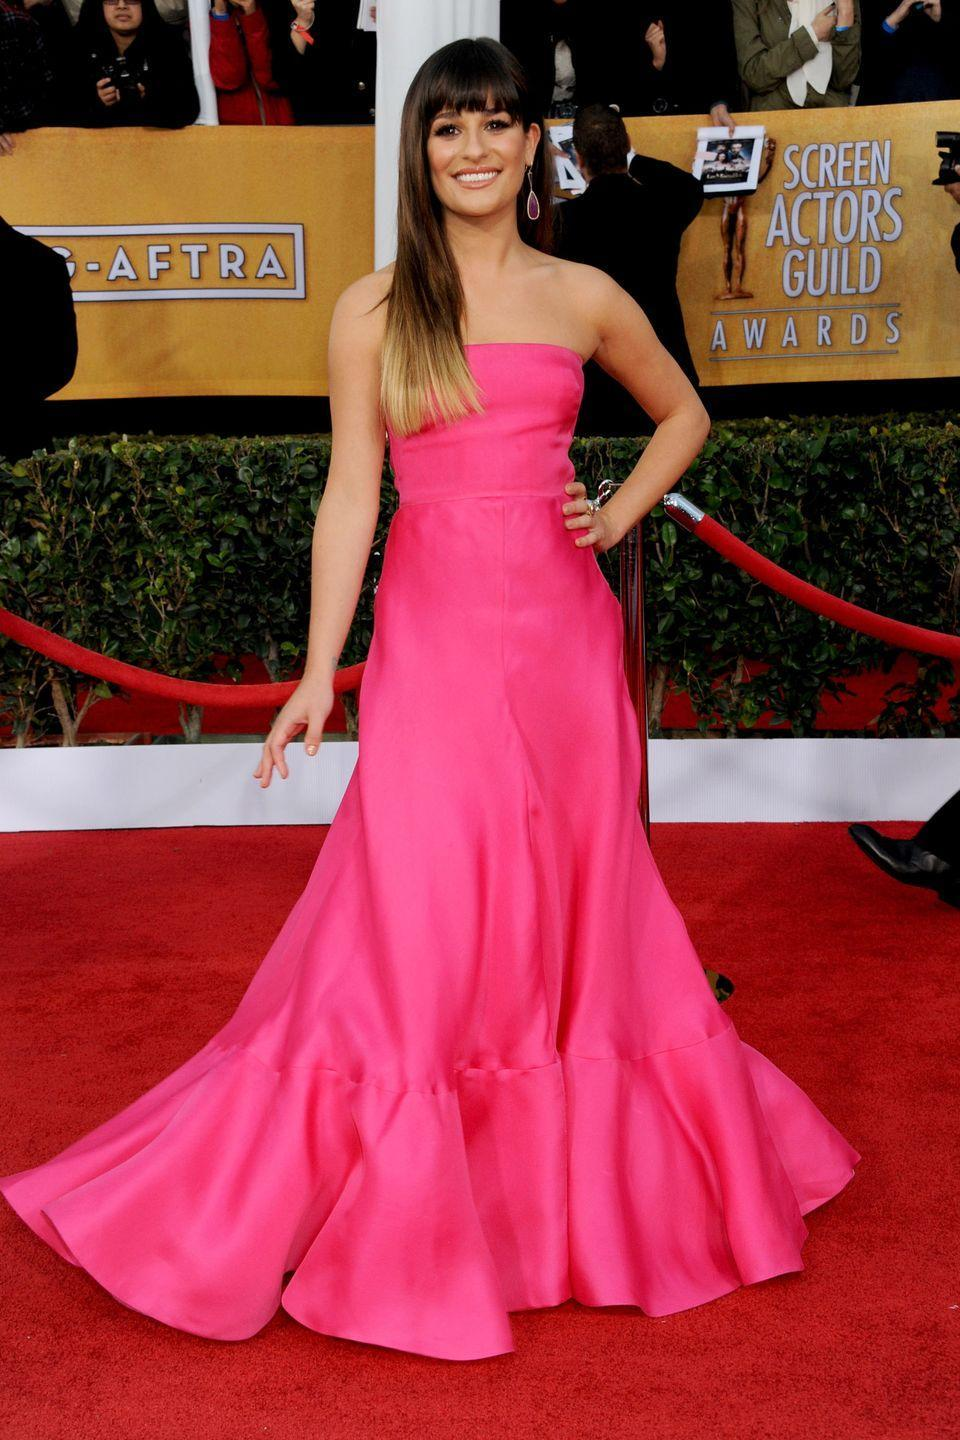 <p>At the 2012 Screen Actors Guild Awards, <em>Glee</em> actress Lea Michele showed us what Princess Aurora's gown would've looked like if it were designed by Valentino.</p>